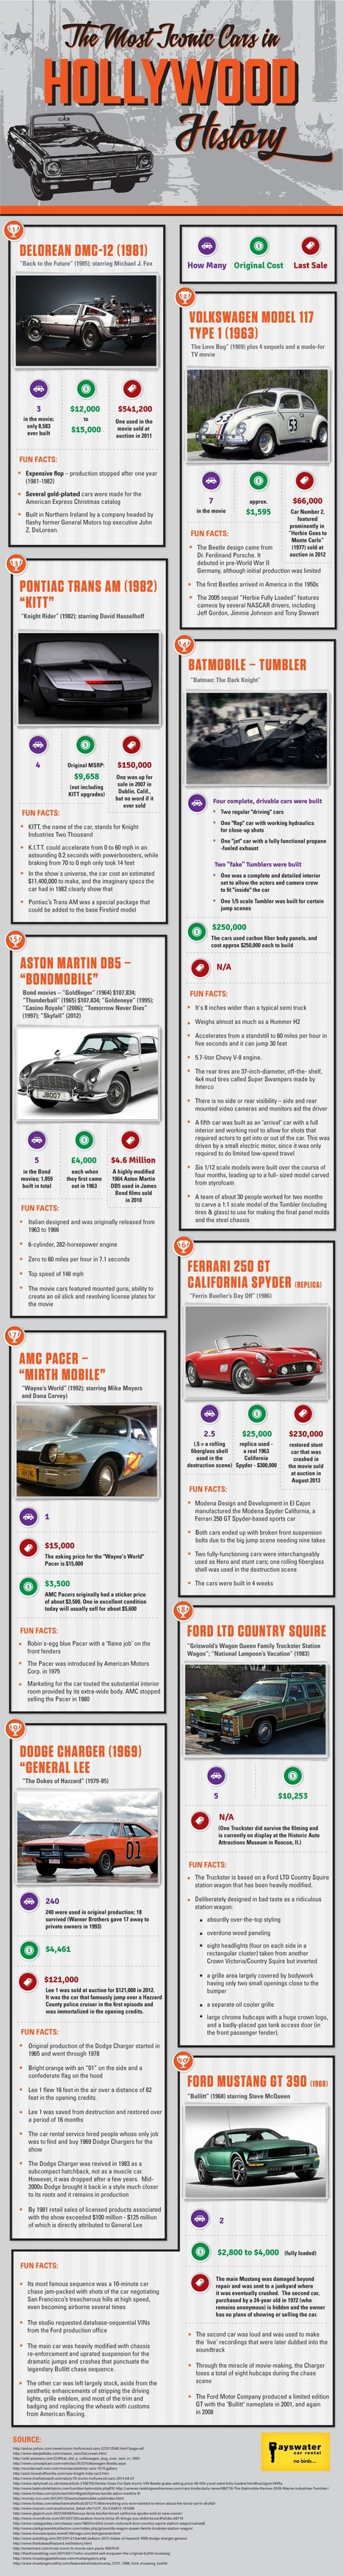 Iconic Cars of Hollywood | Visualizations | Scoop.it